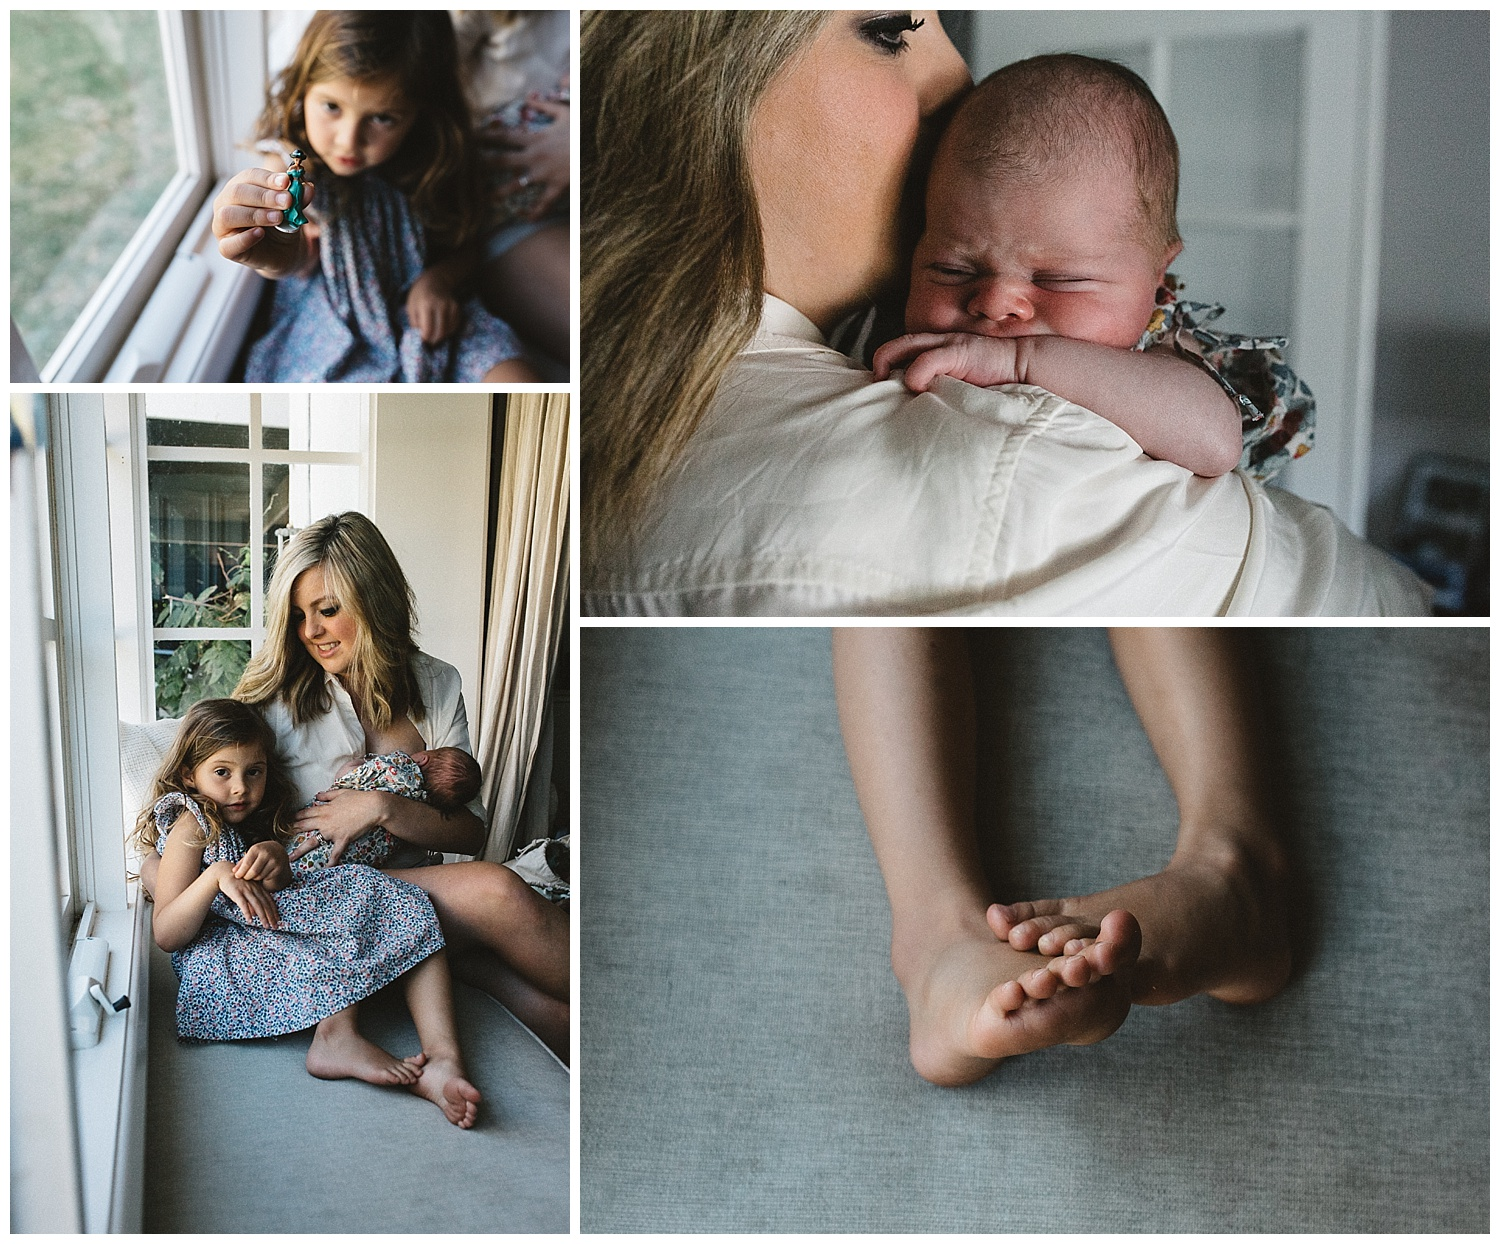 Pregnancy photography in melbourne and South melbourne. Details of foot and mum with baby